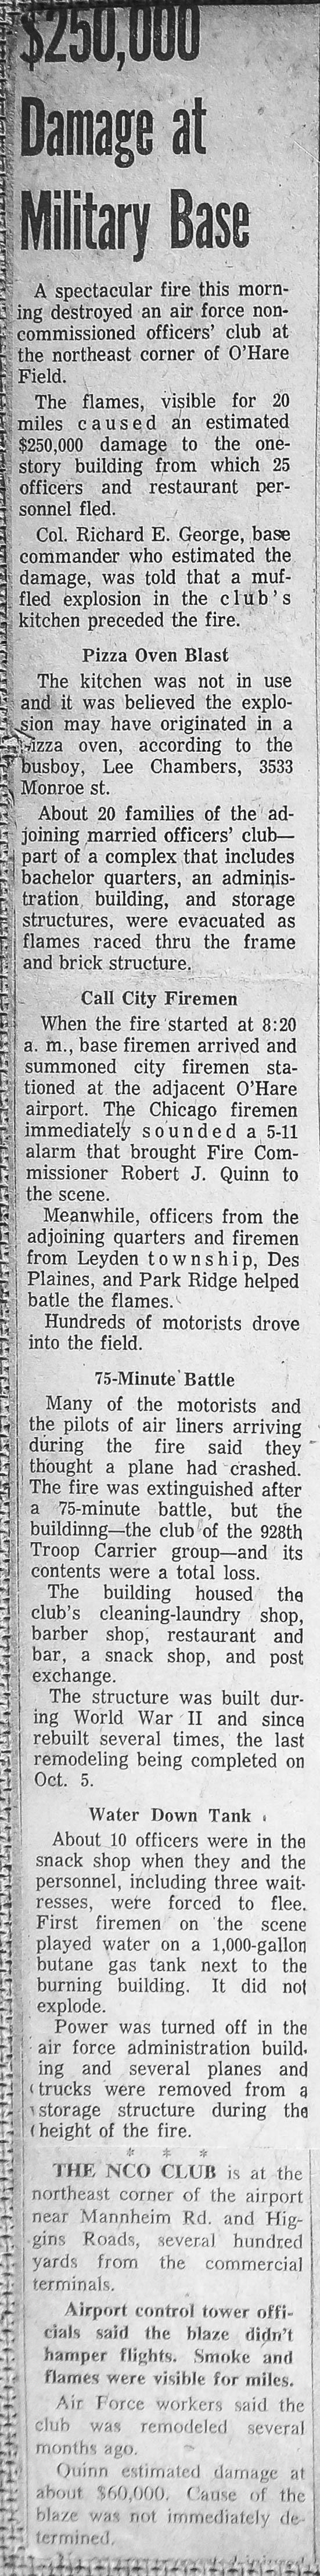 vintage 5-11 Alarm fire at O'Hare Field in Chicago 3/9/63